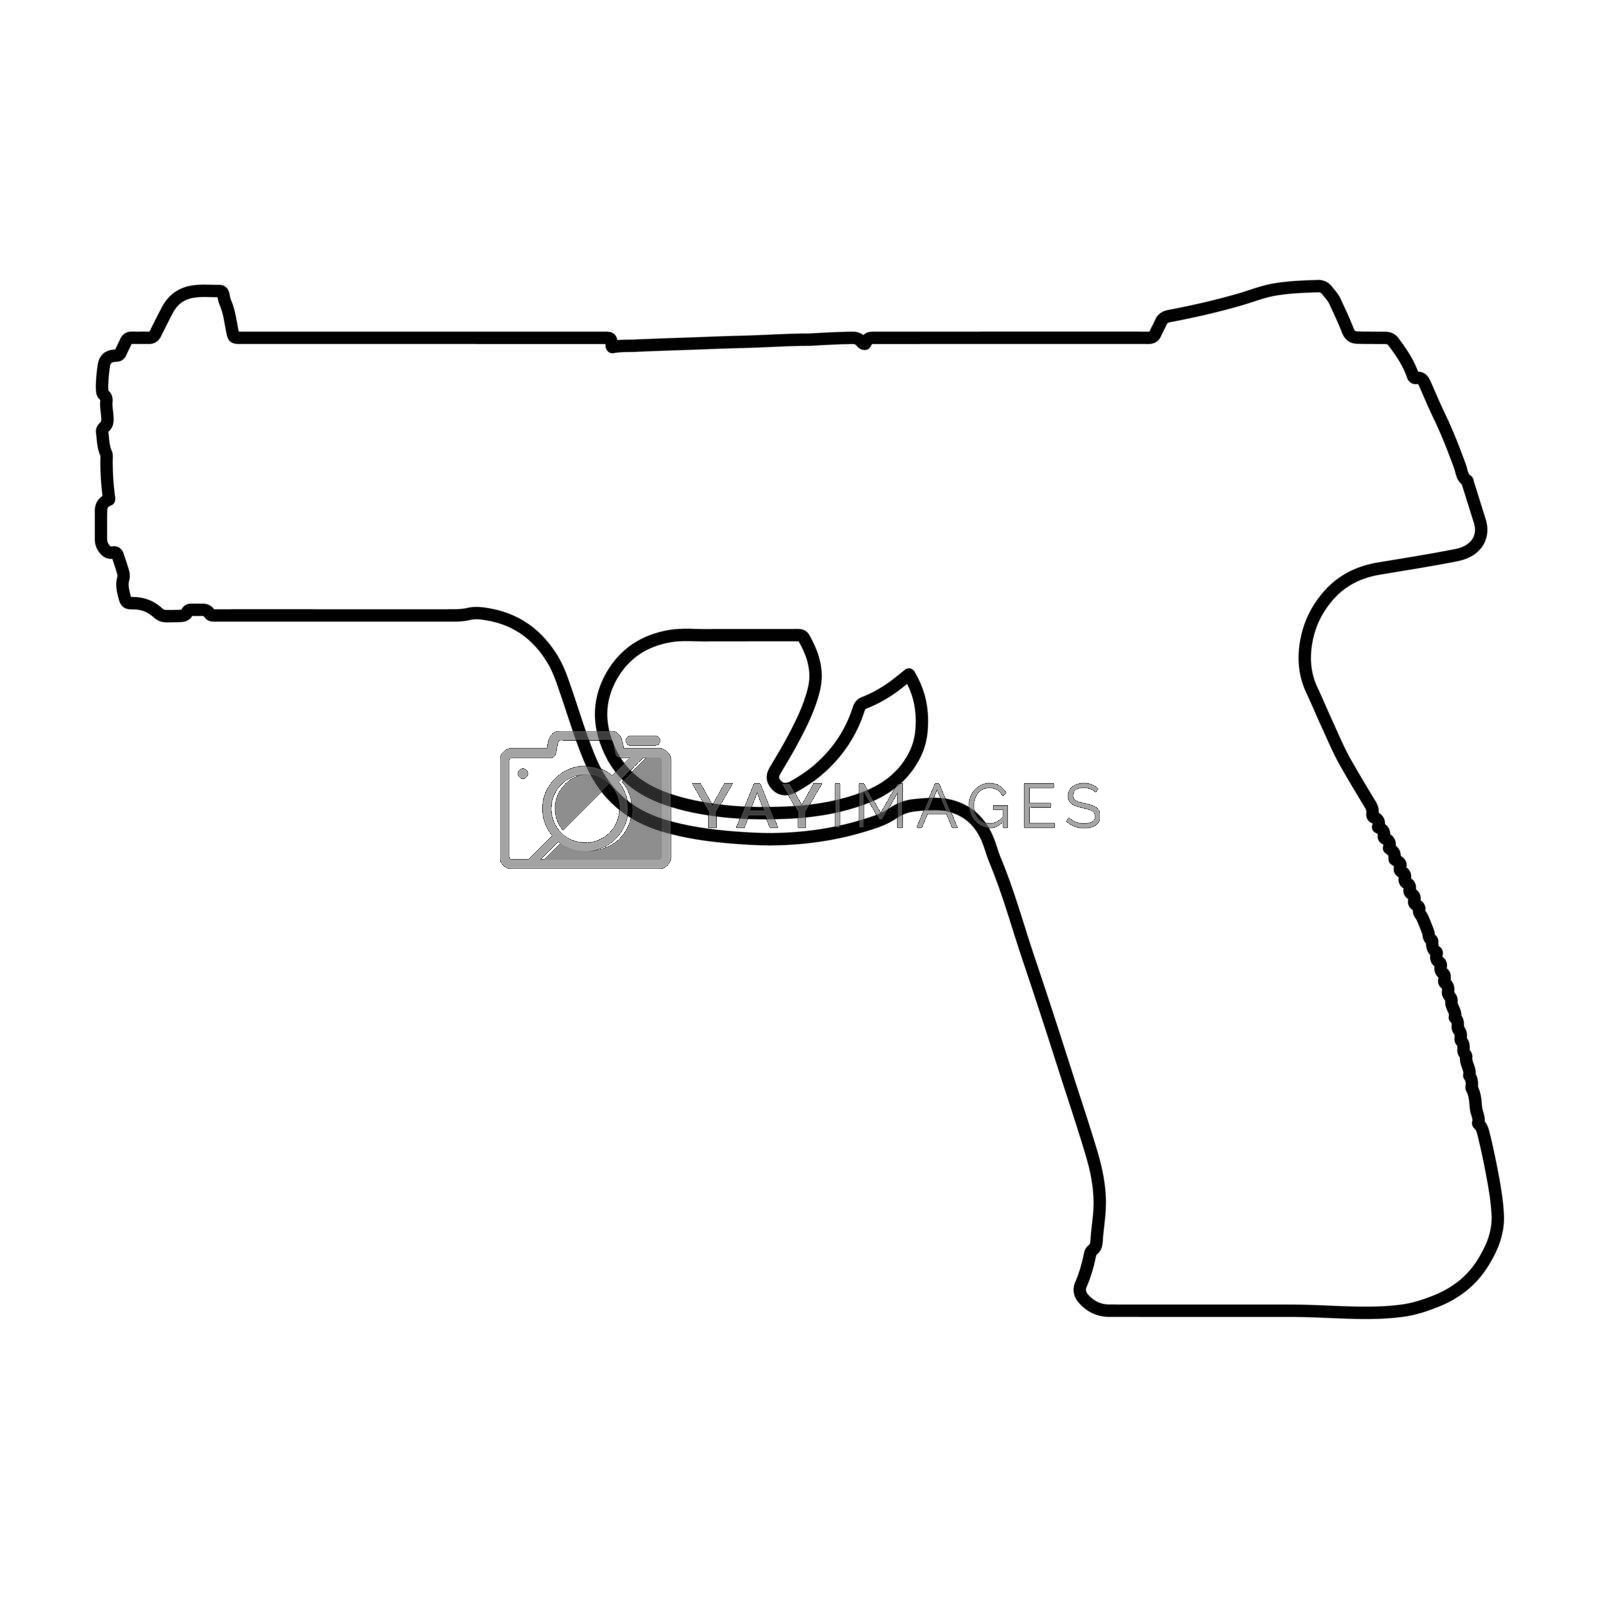 Pistol outline illustration. Handgun contour isolated on white. Vector illustration.